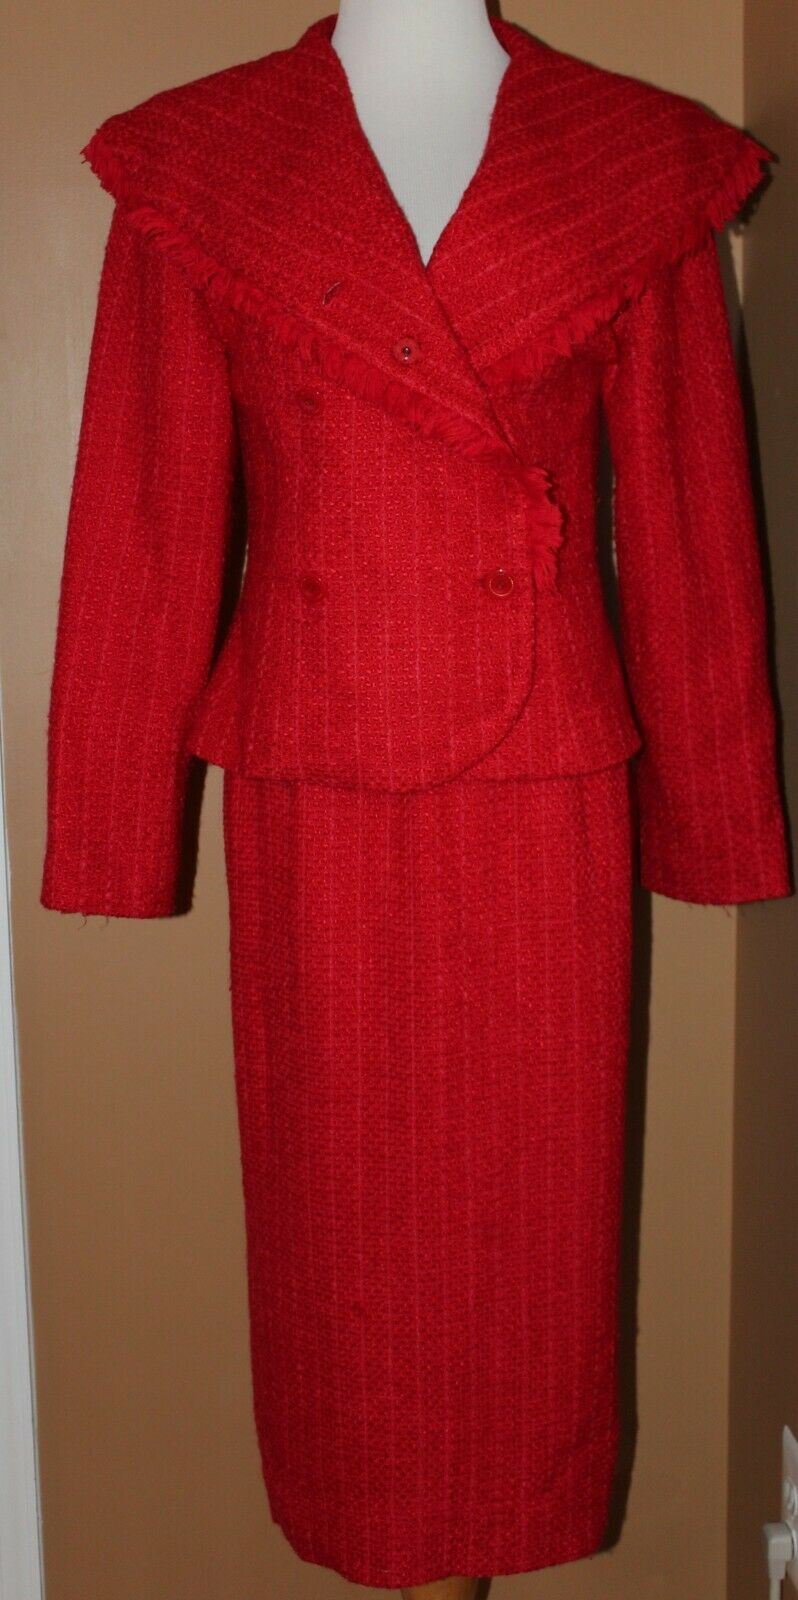 Gazzelle Ciampi Magali Red Knit Skirt Suit 8 Shawl Collar Long Skirt